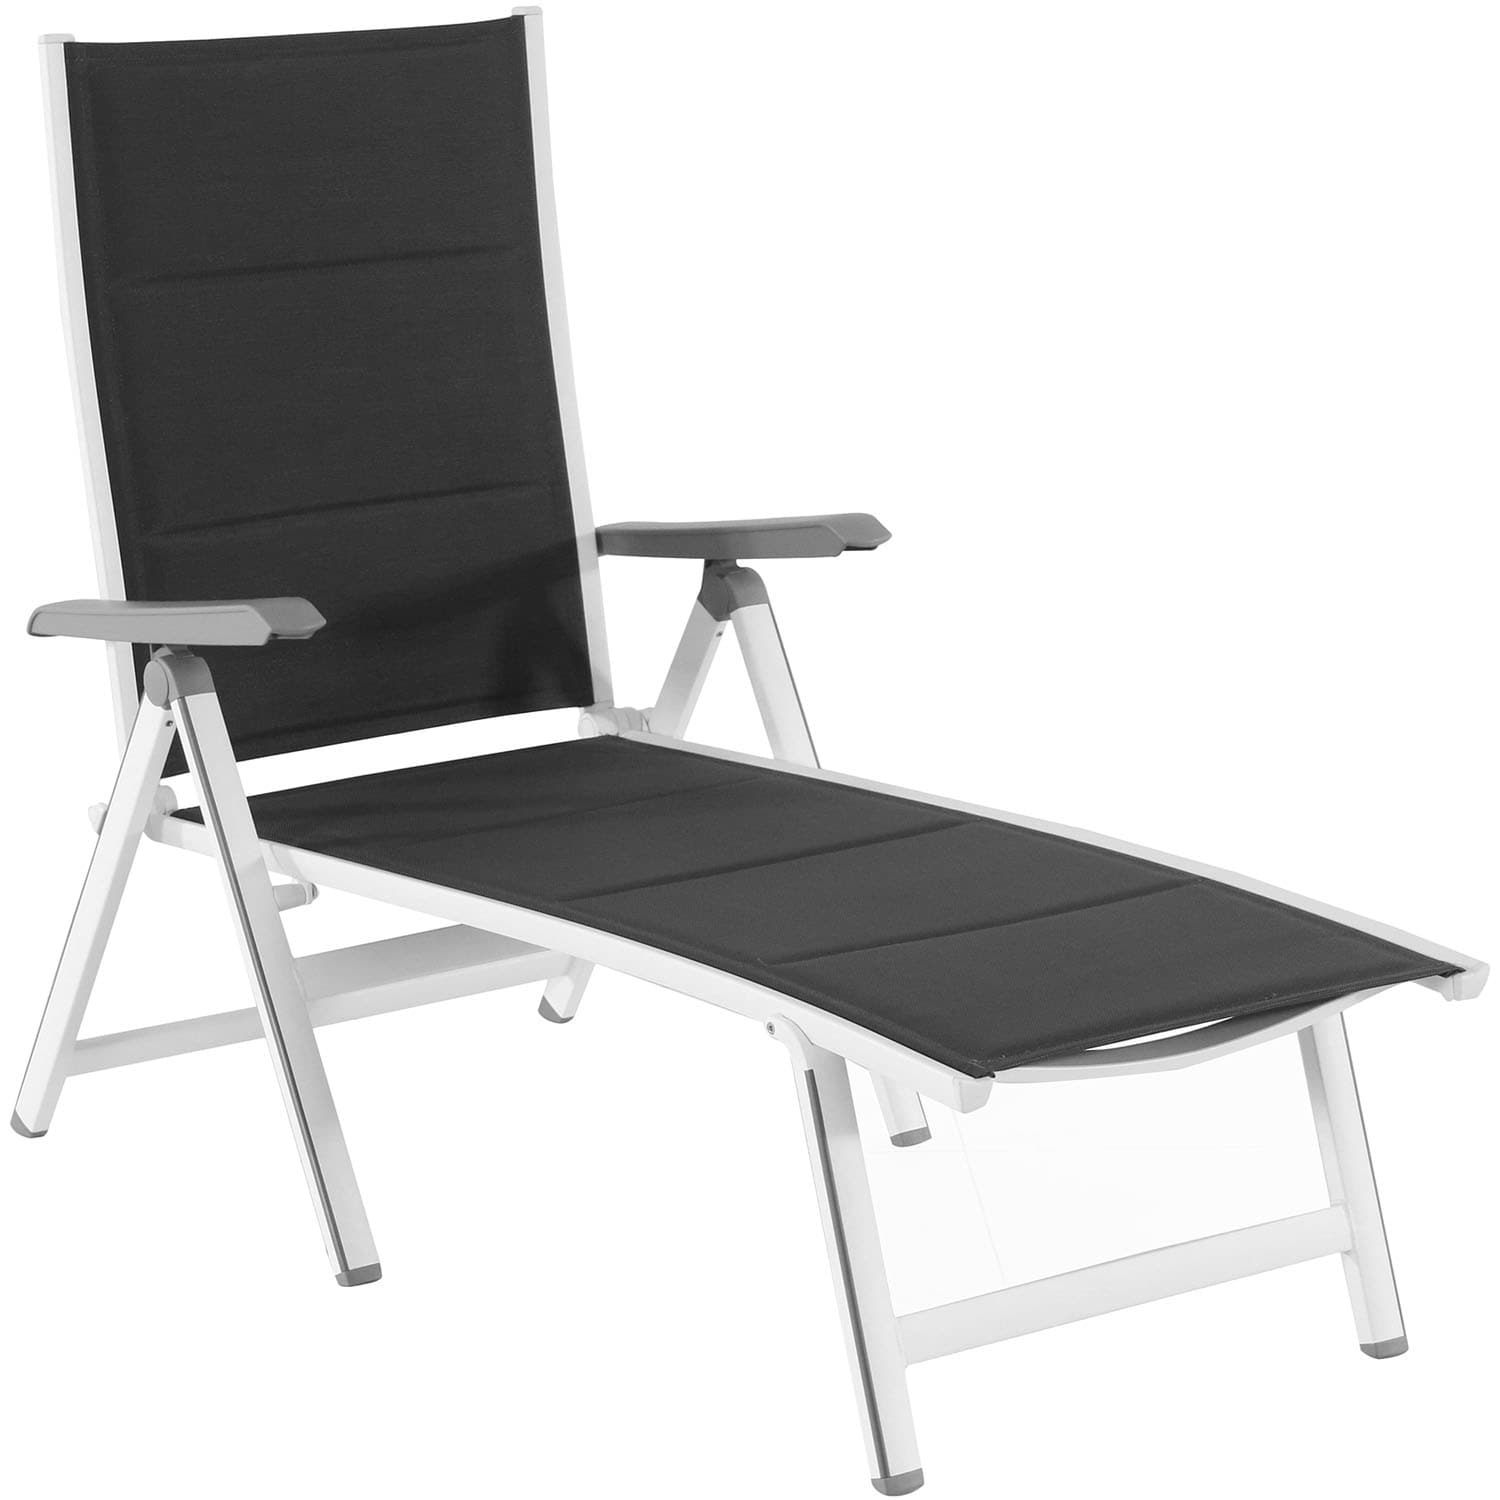 Hanover Regis Grey Aluminum Padded Sling Outdoor Chaise Lounge